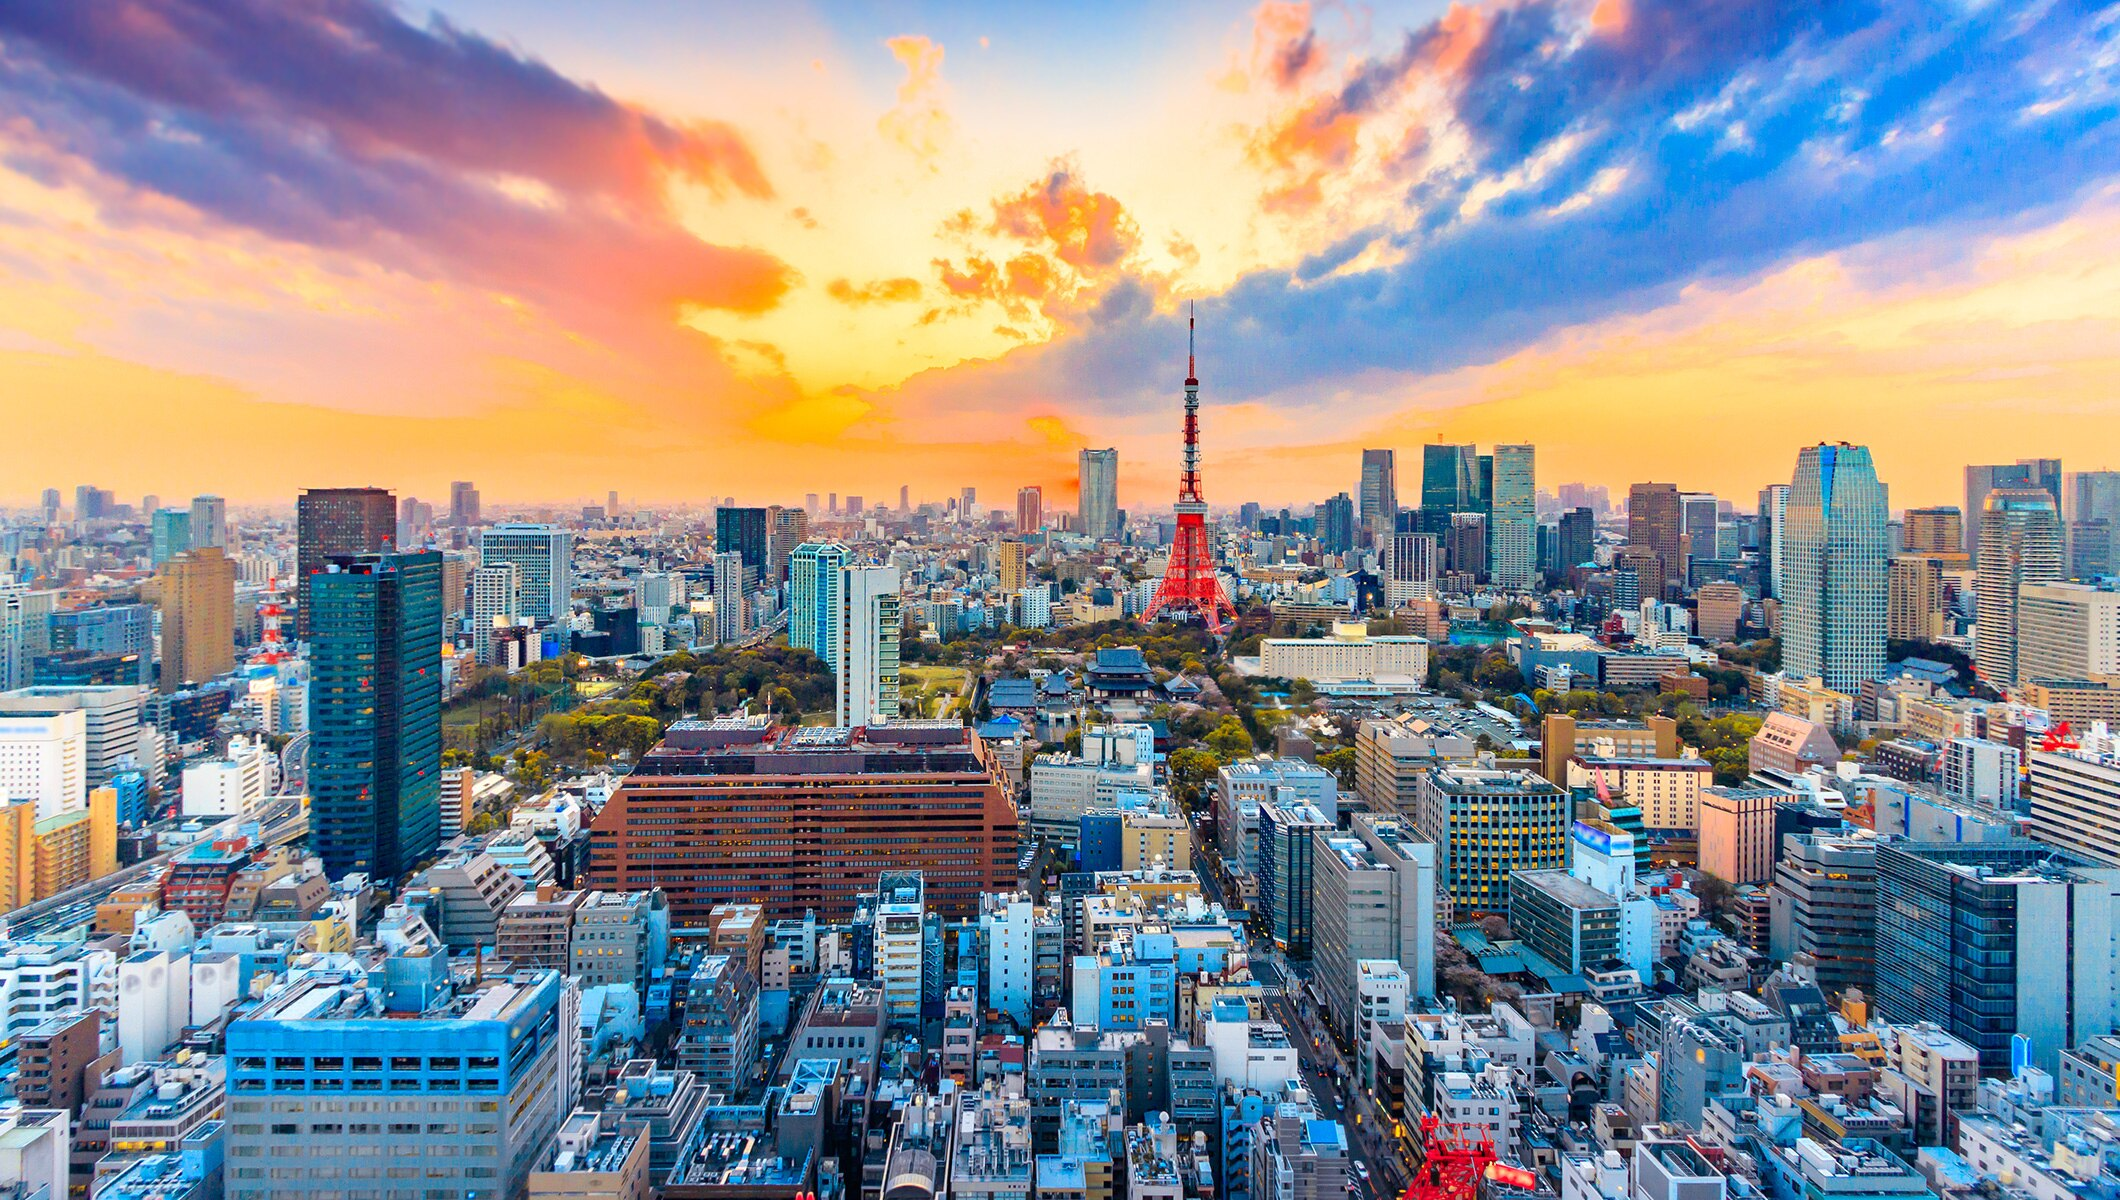 Trailblazing Tokyo looking ahead with dazzling innovation